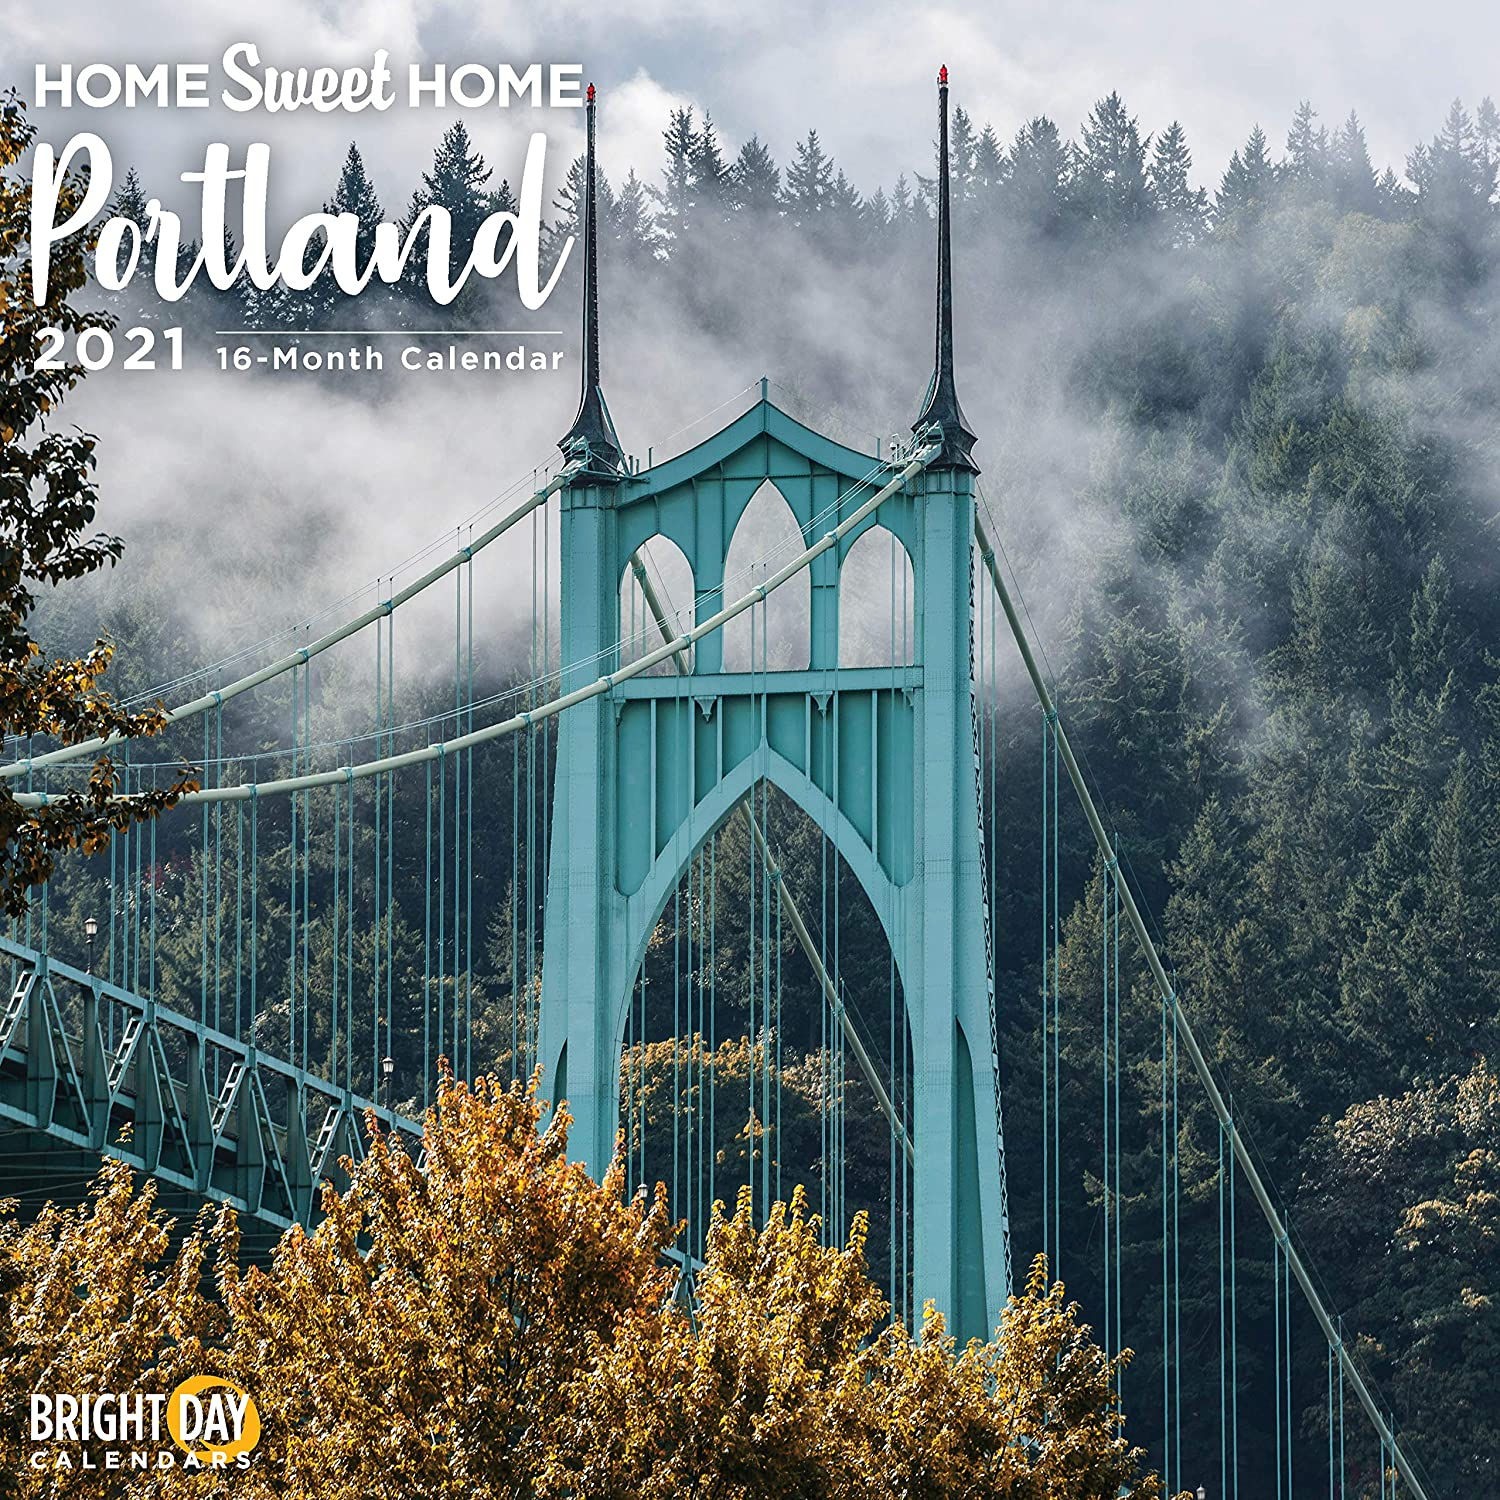 2021 Home Sweet Home Portland Wall Calendar by Bright Day, 12 x 12 Inch, Oregon Pacific Northwest USA Evergreen Hometown Travel Destination Inspiration